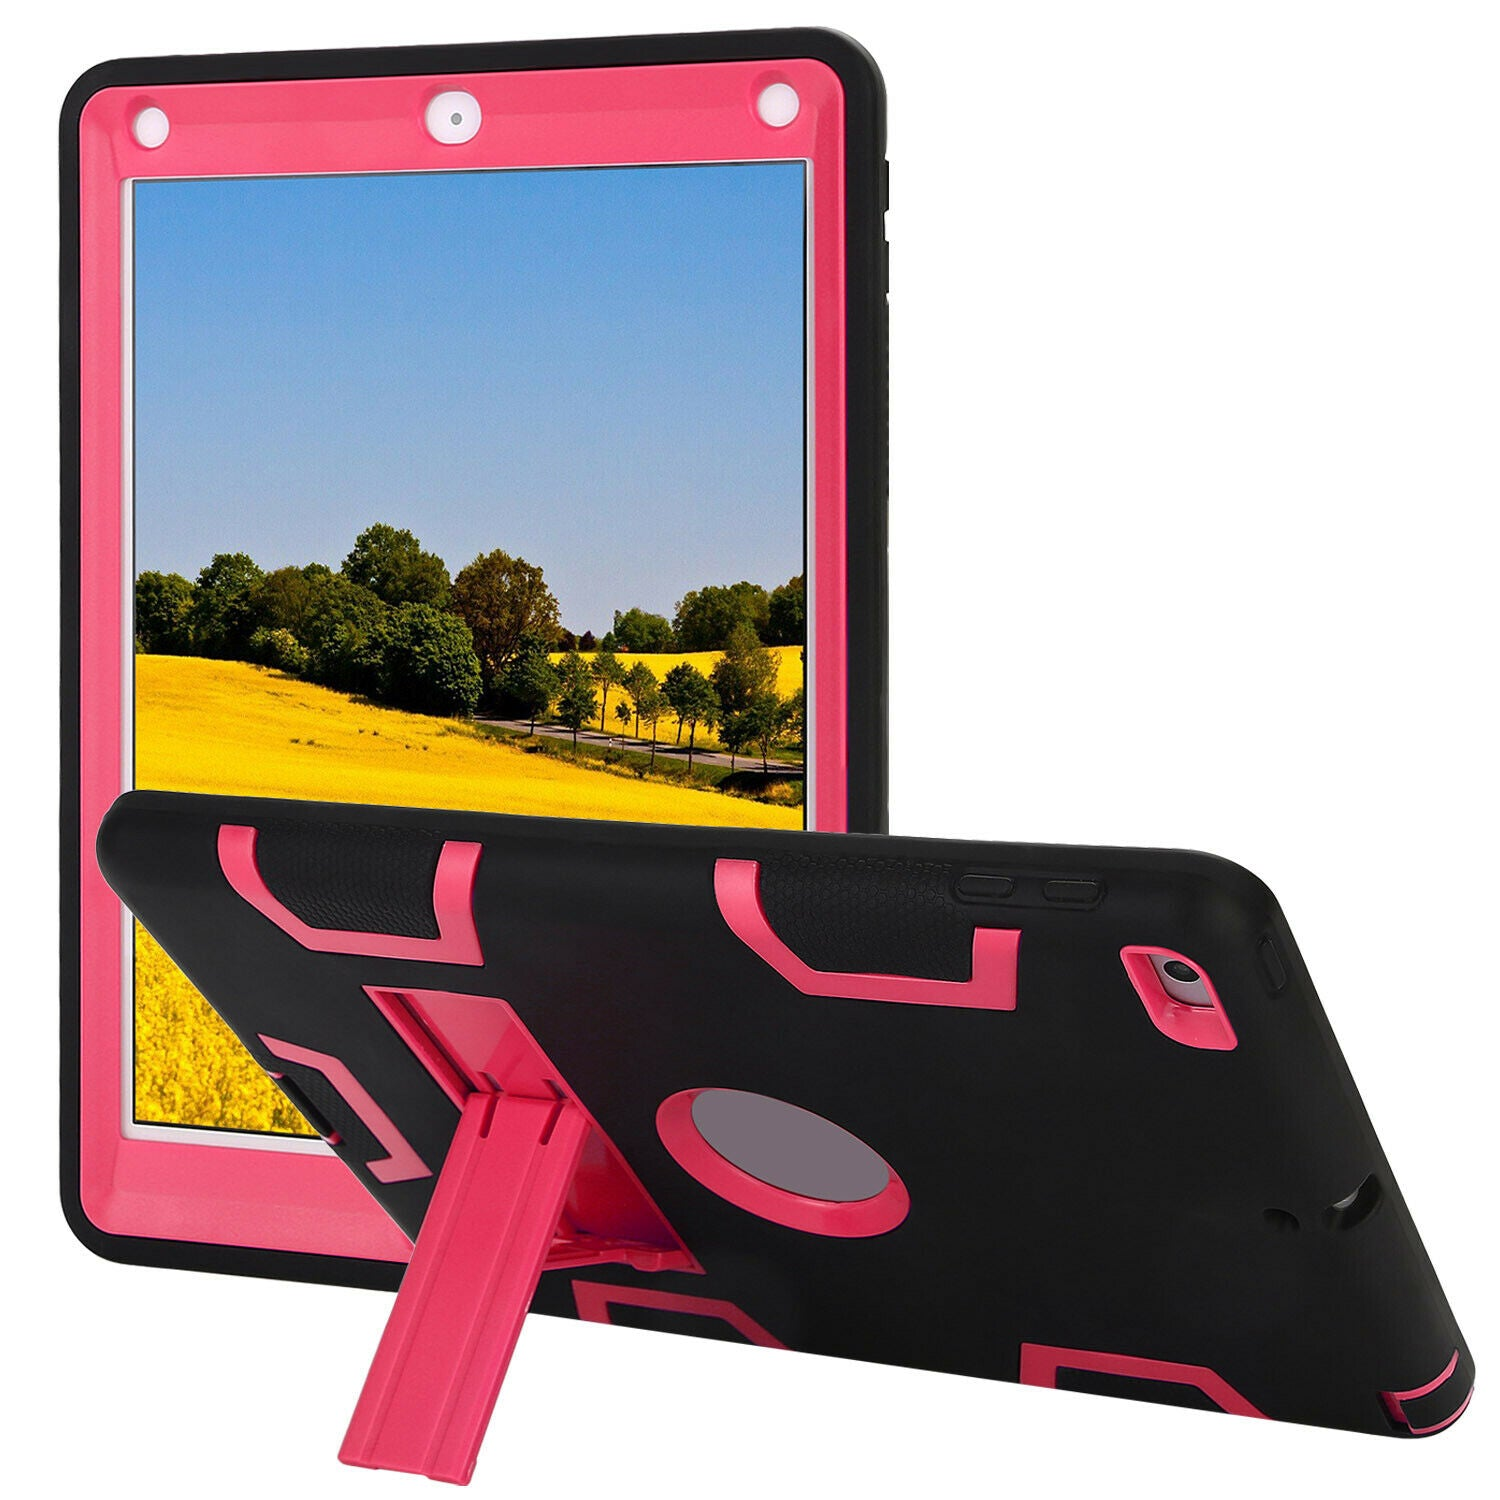 Kids Shockproof Case Heavy Duty Tough Kick Stand Cover for iPad Mini 1/2/3